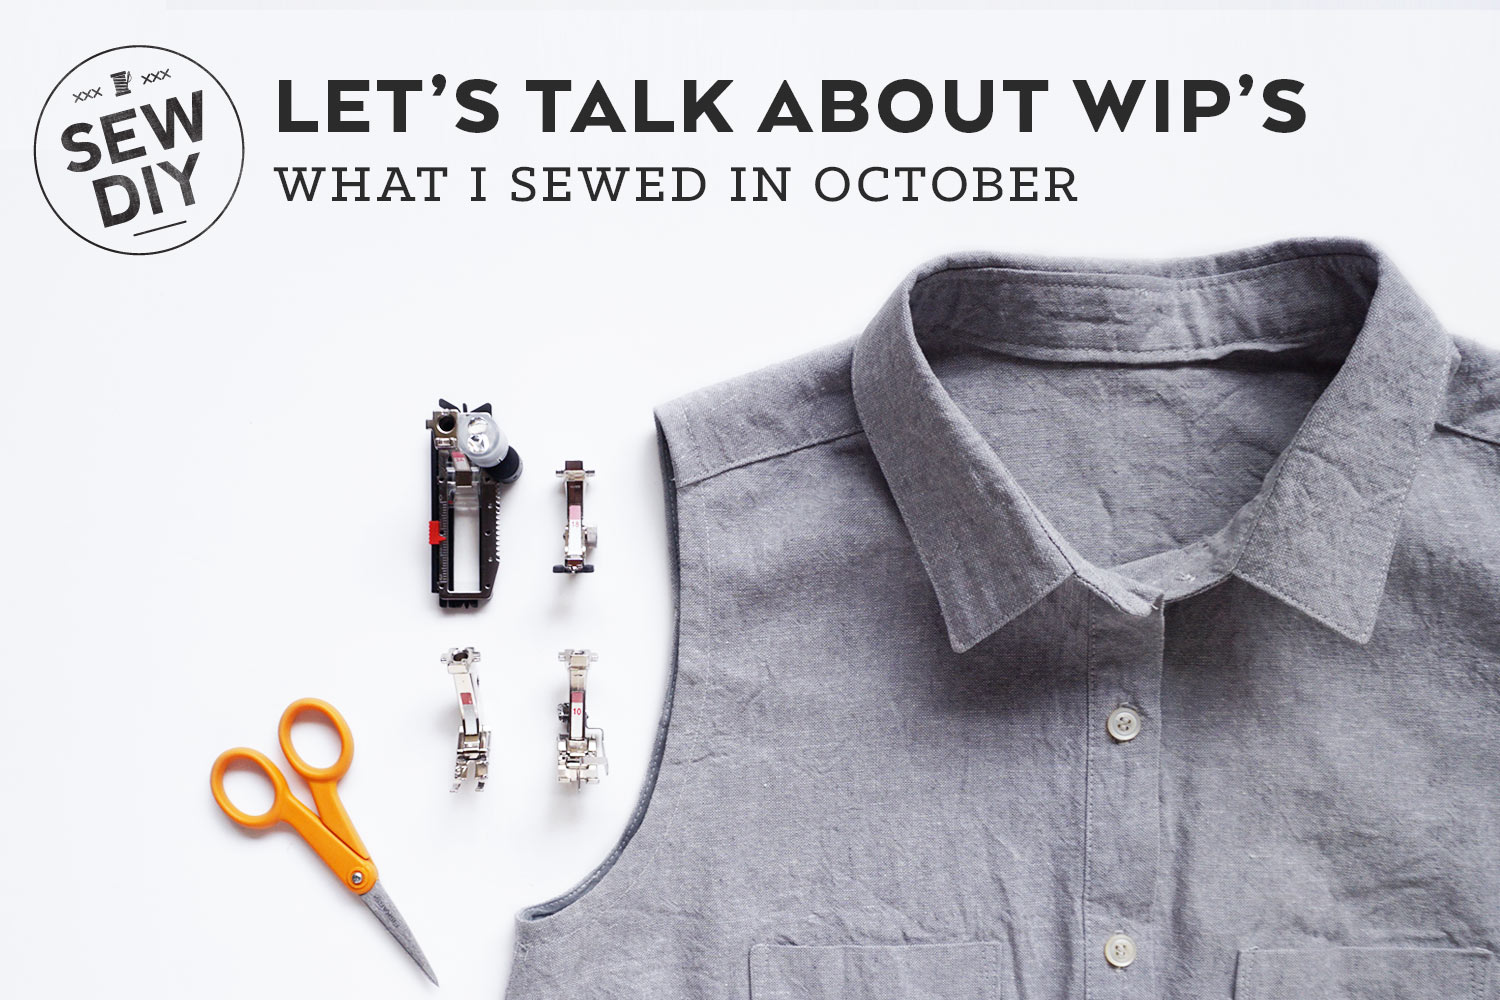 Let's talk about WIPs – What I sewed in October | Sew DIY